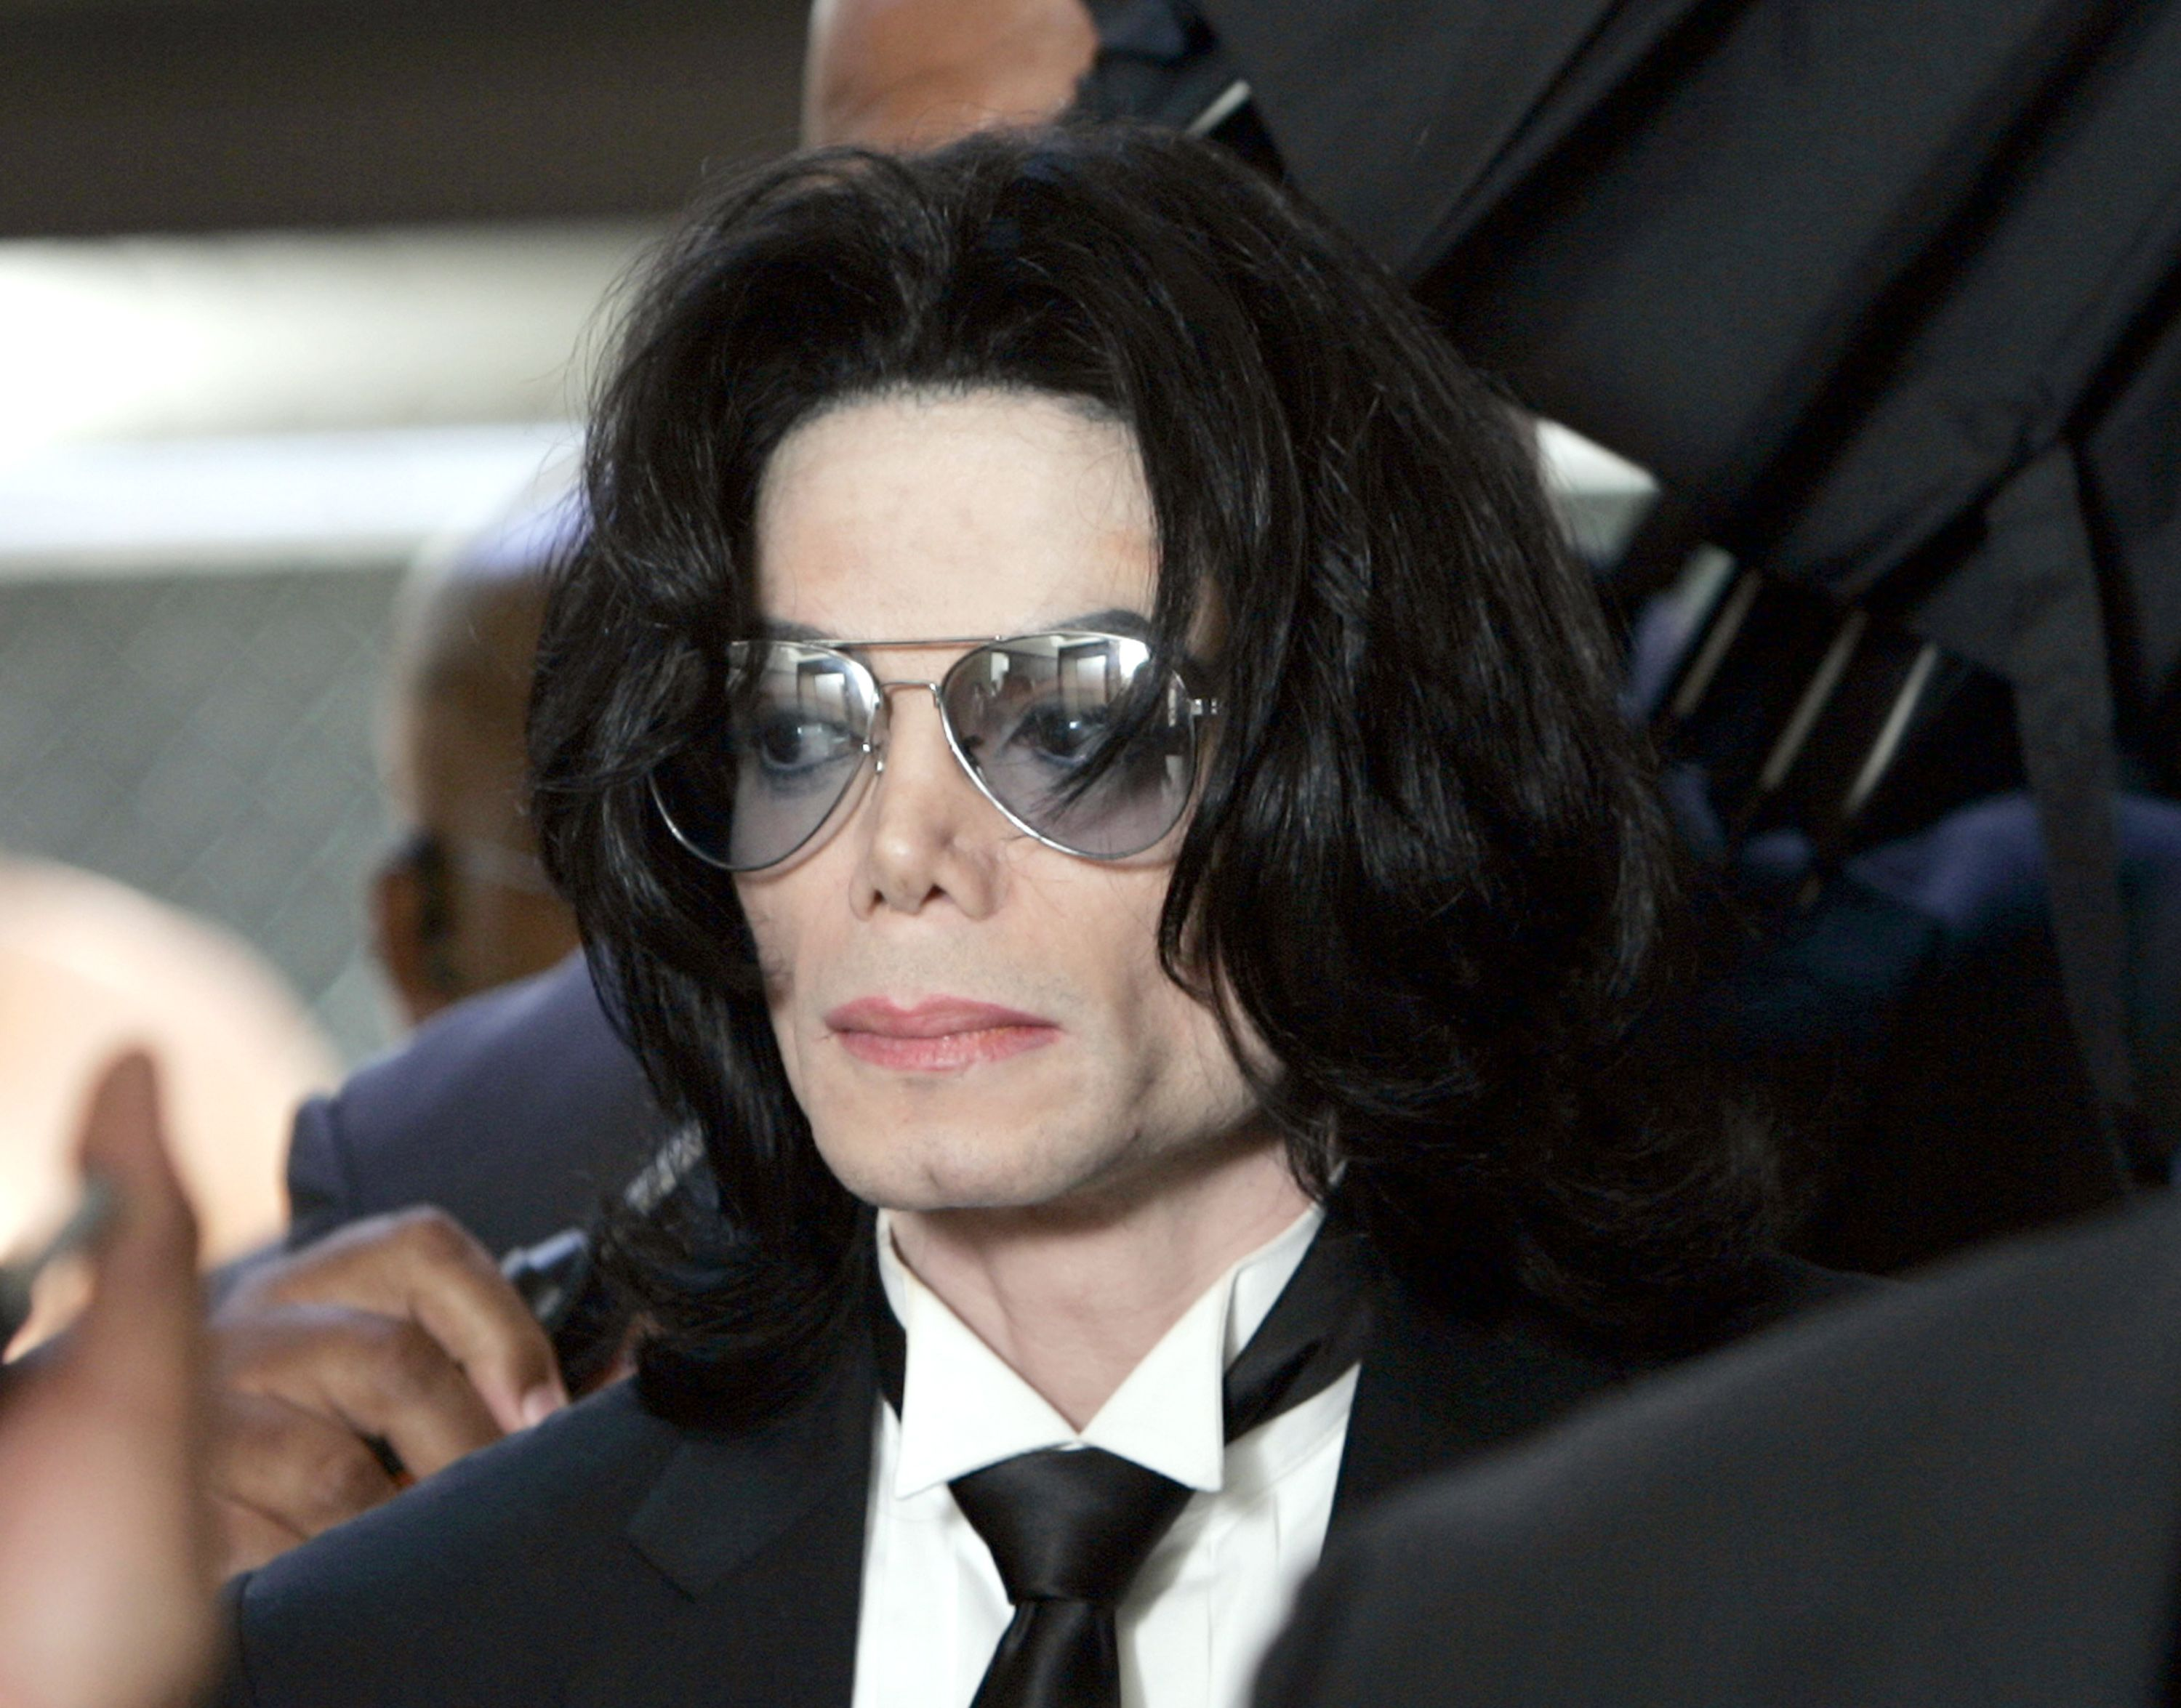 Image result for serious michael jackson